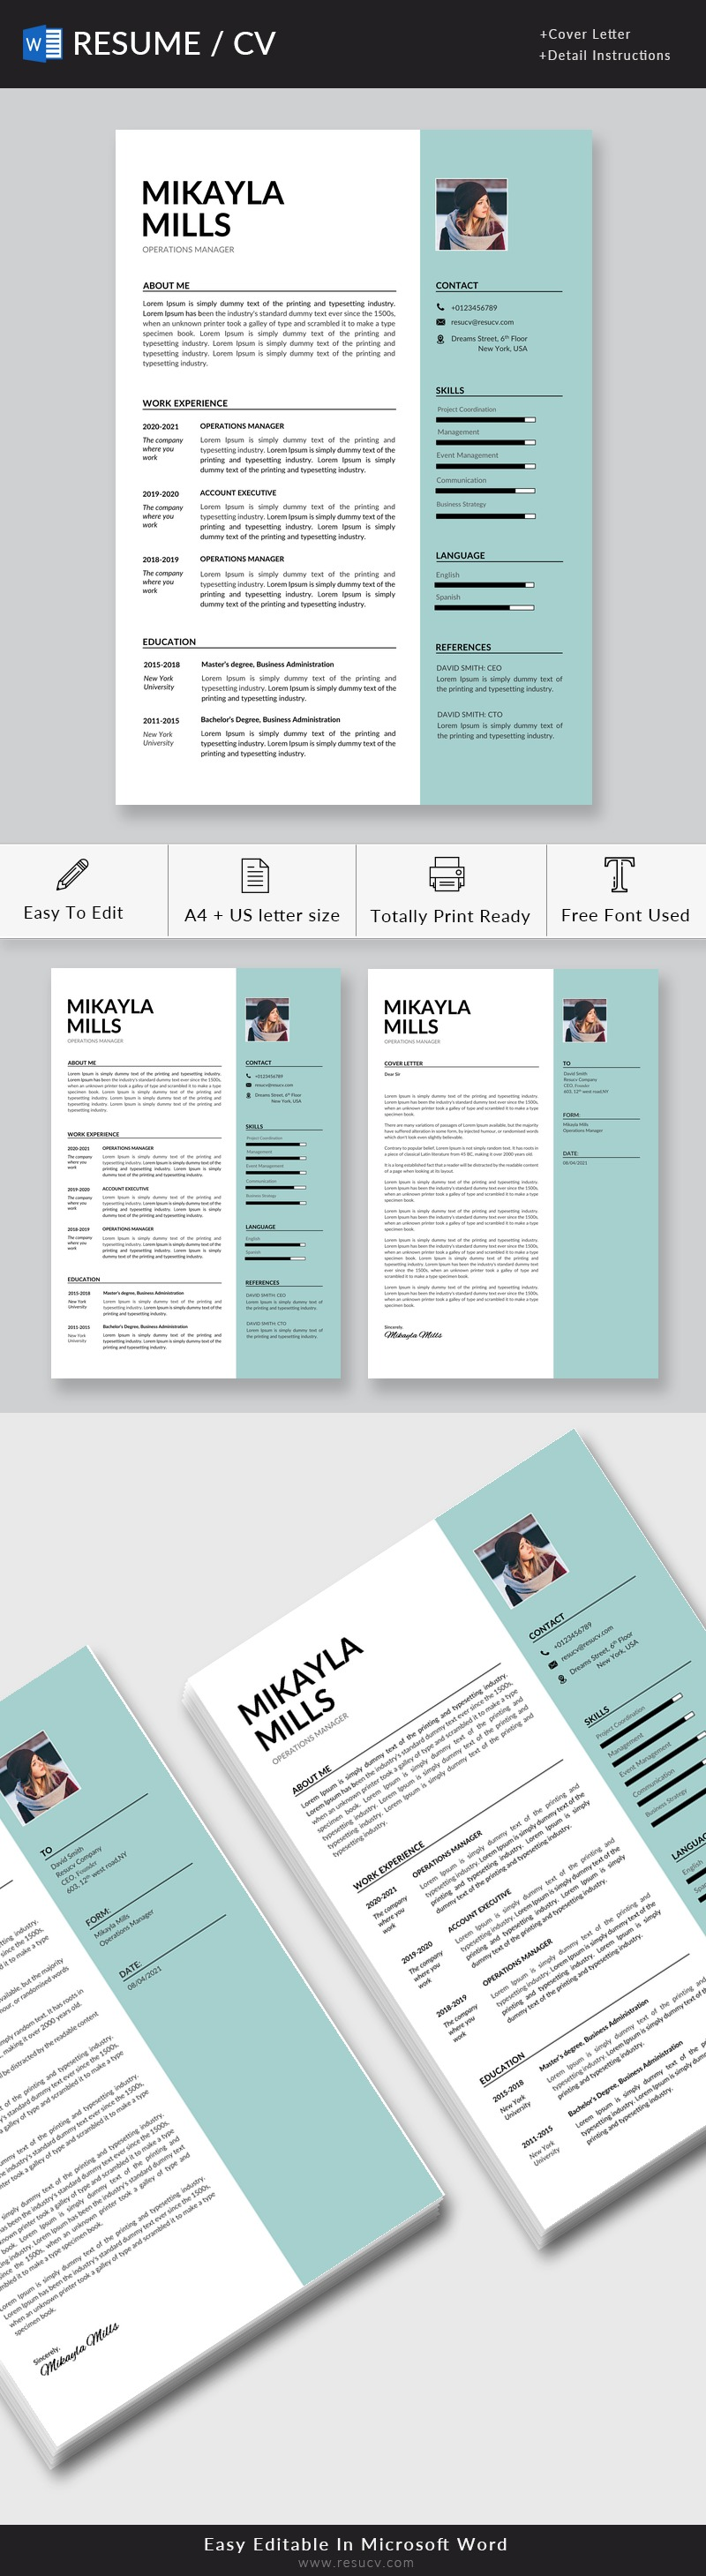 Clean Operations Manager Resume Template for Word with Cover Letter